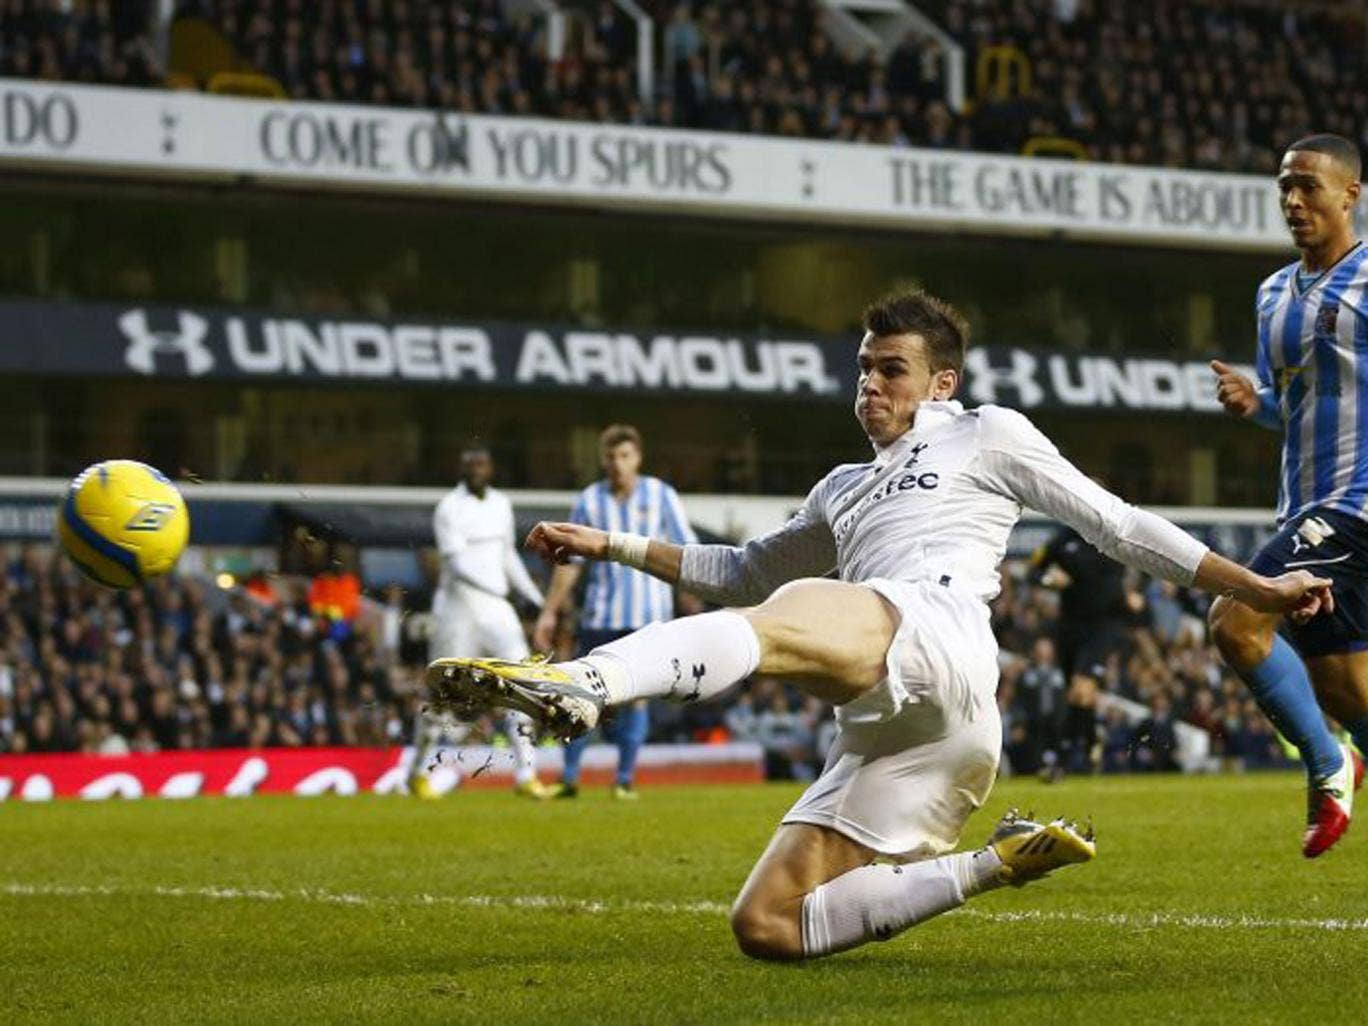 Gareth Bale makes it 2-0 in Tottenham's stroll into the FA Cup fourth round